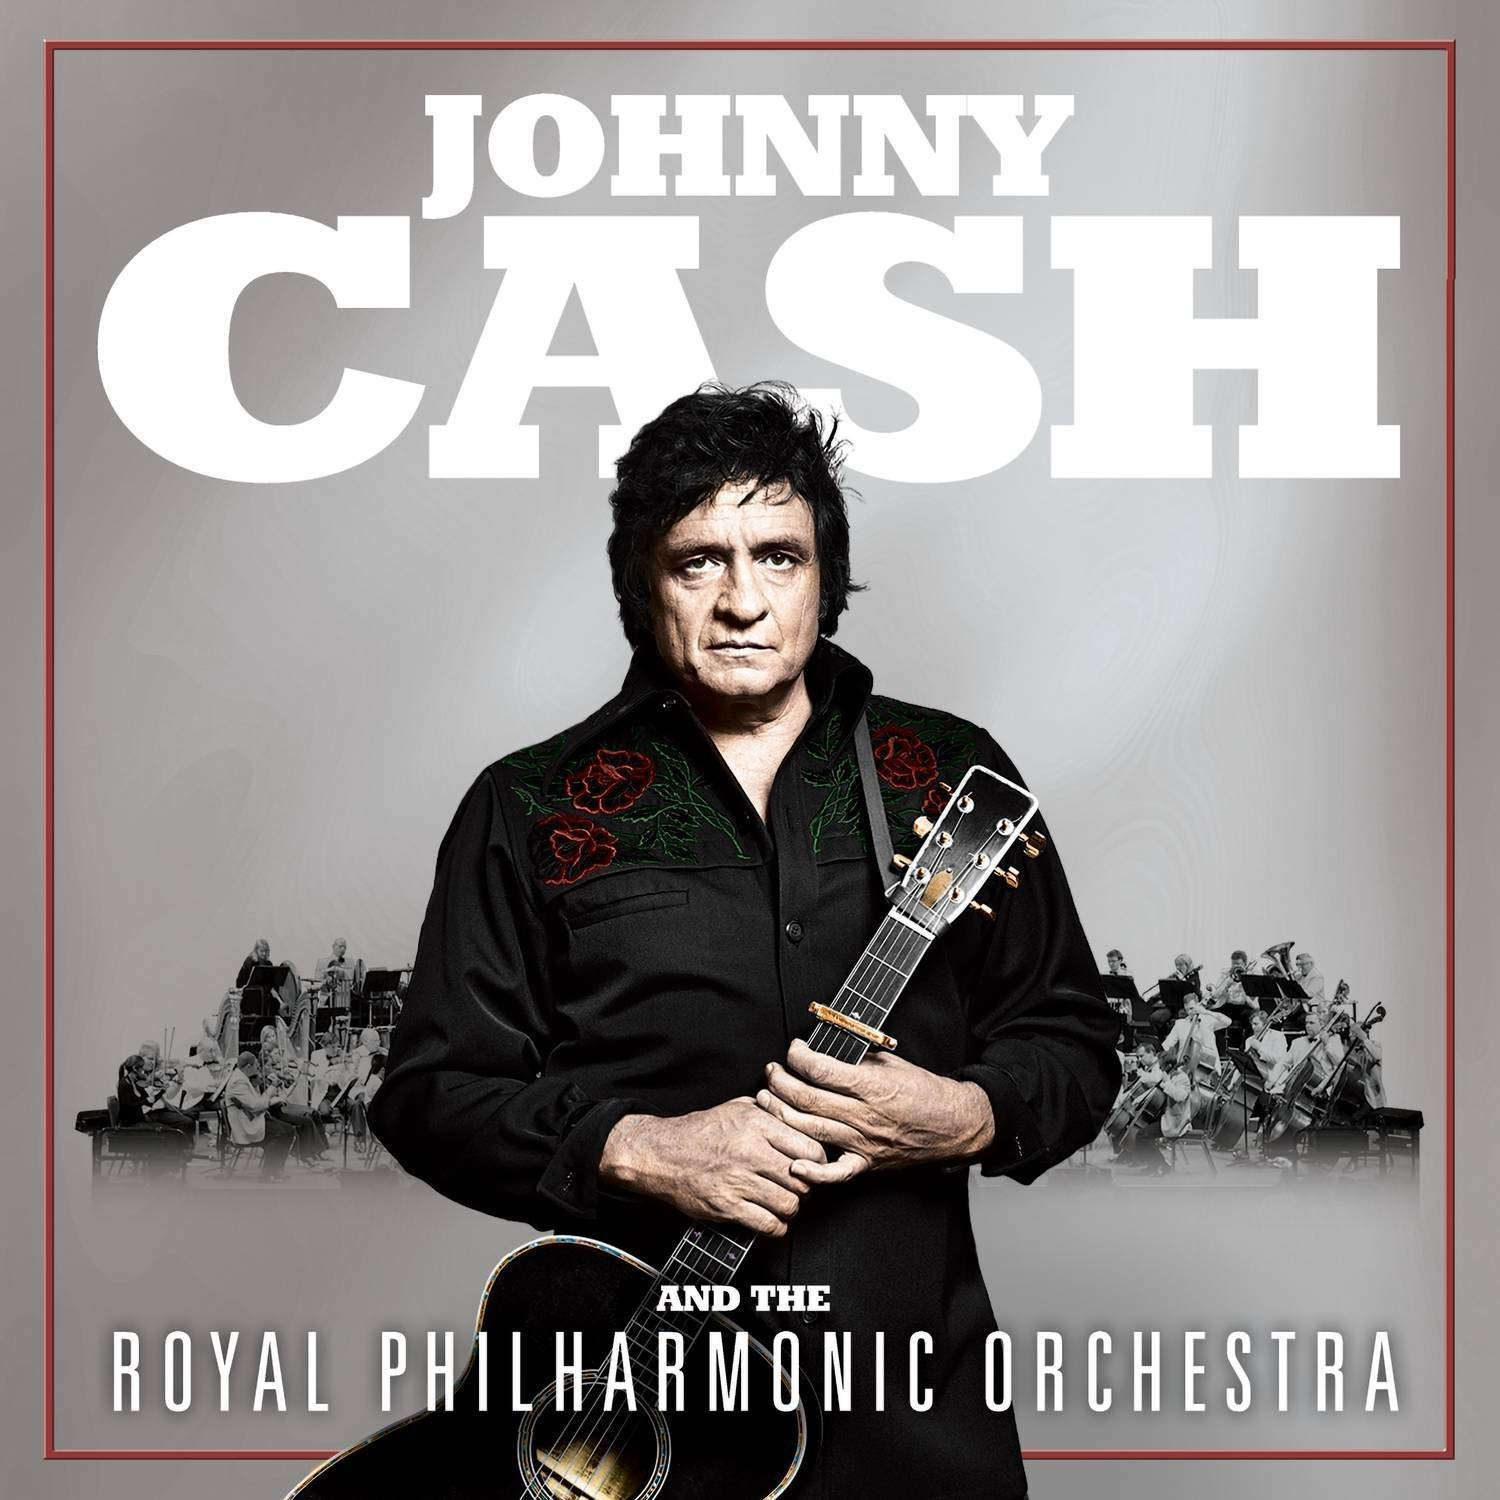 Johnny Cash - Johnny Cash And The Royal Philharmonic Orchestra (2020)